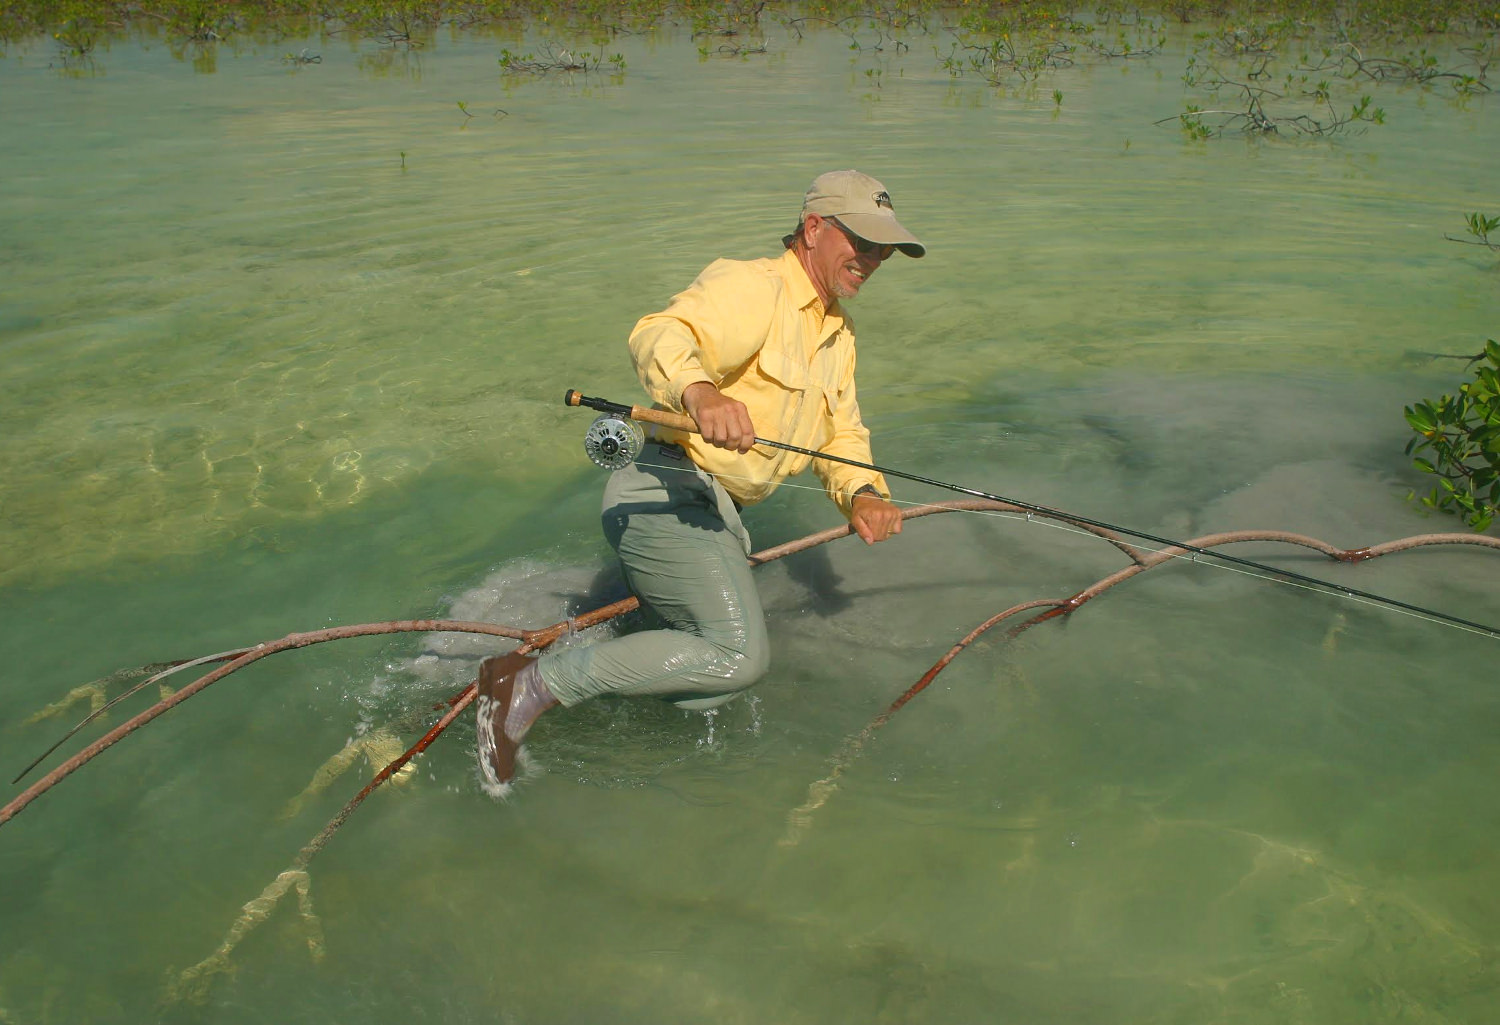 fly fishing saltwater tides determine success toflyfish